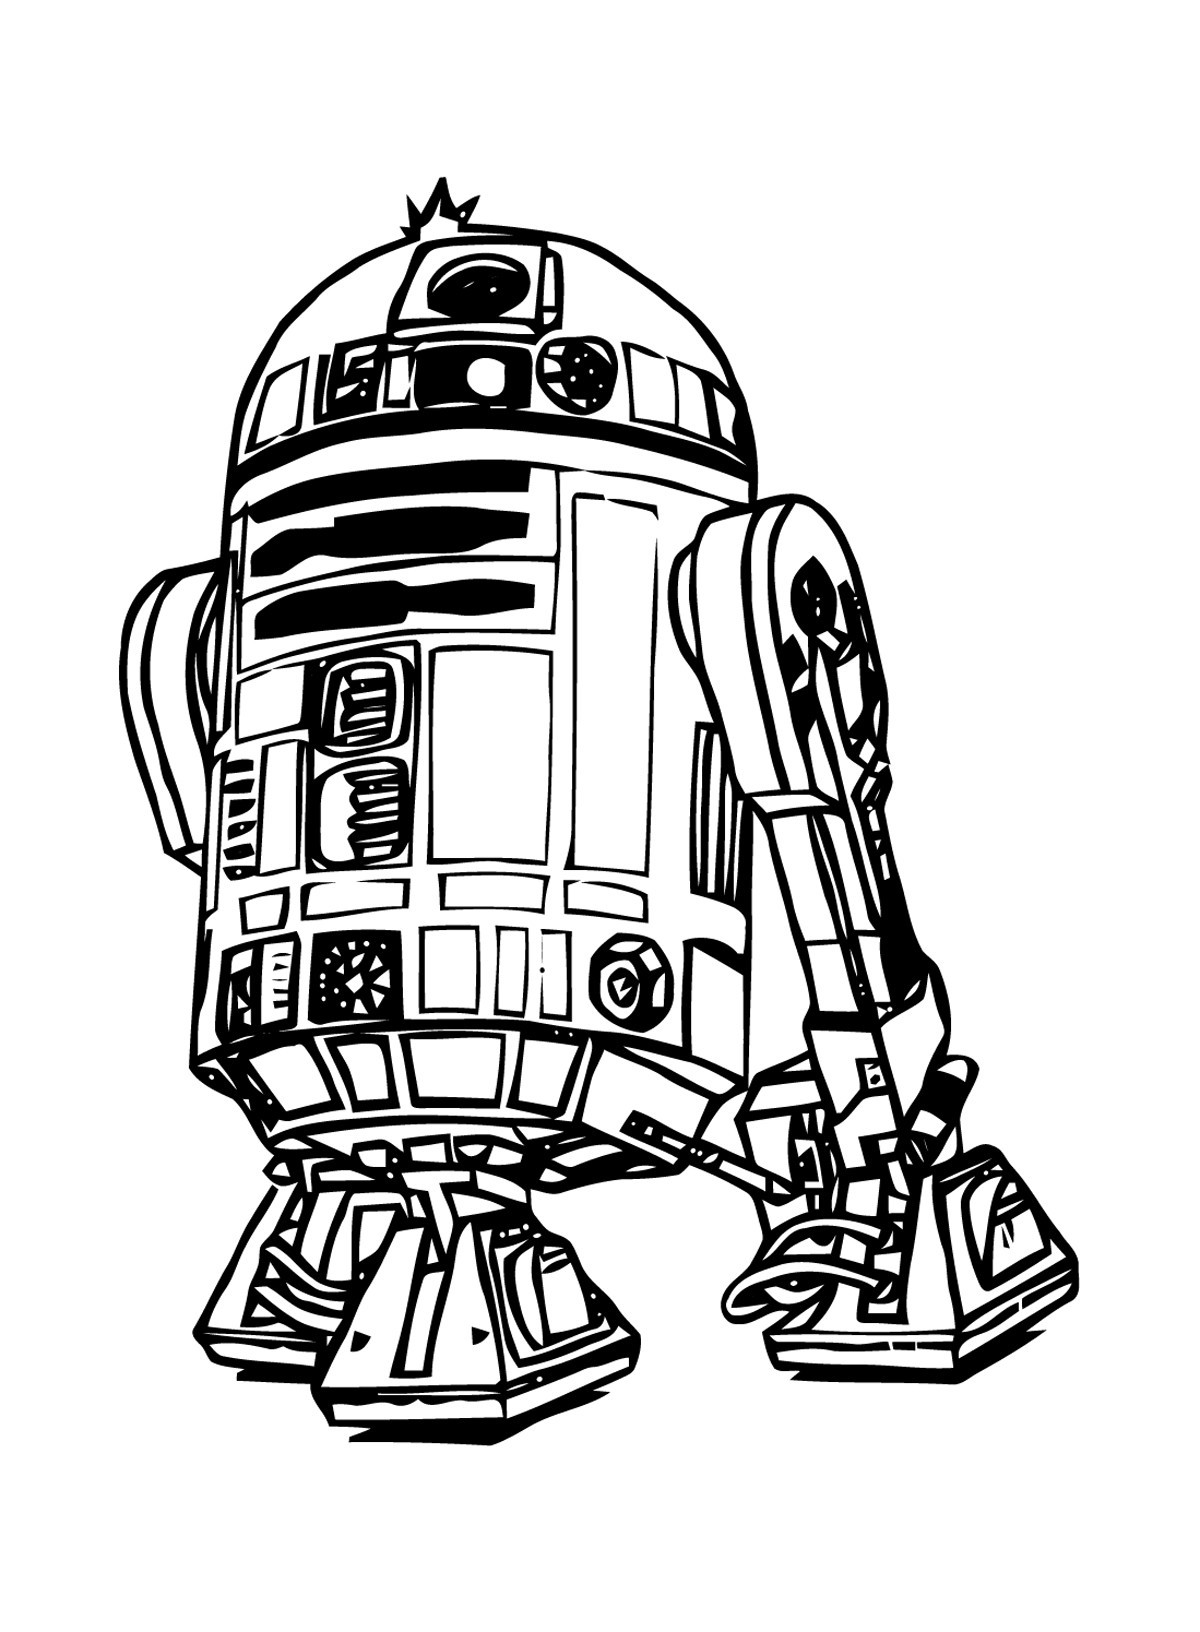 star wars colouring for kids star wars printable coloring pages hubpages for colouring wars star kids